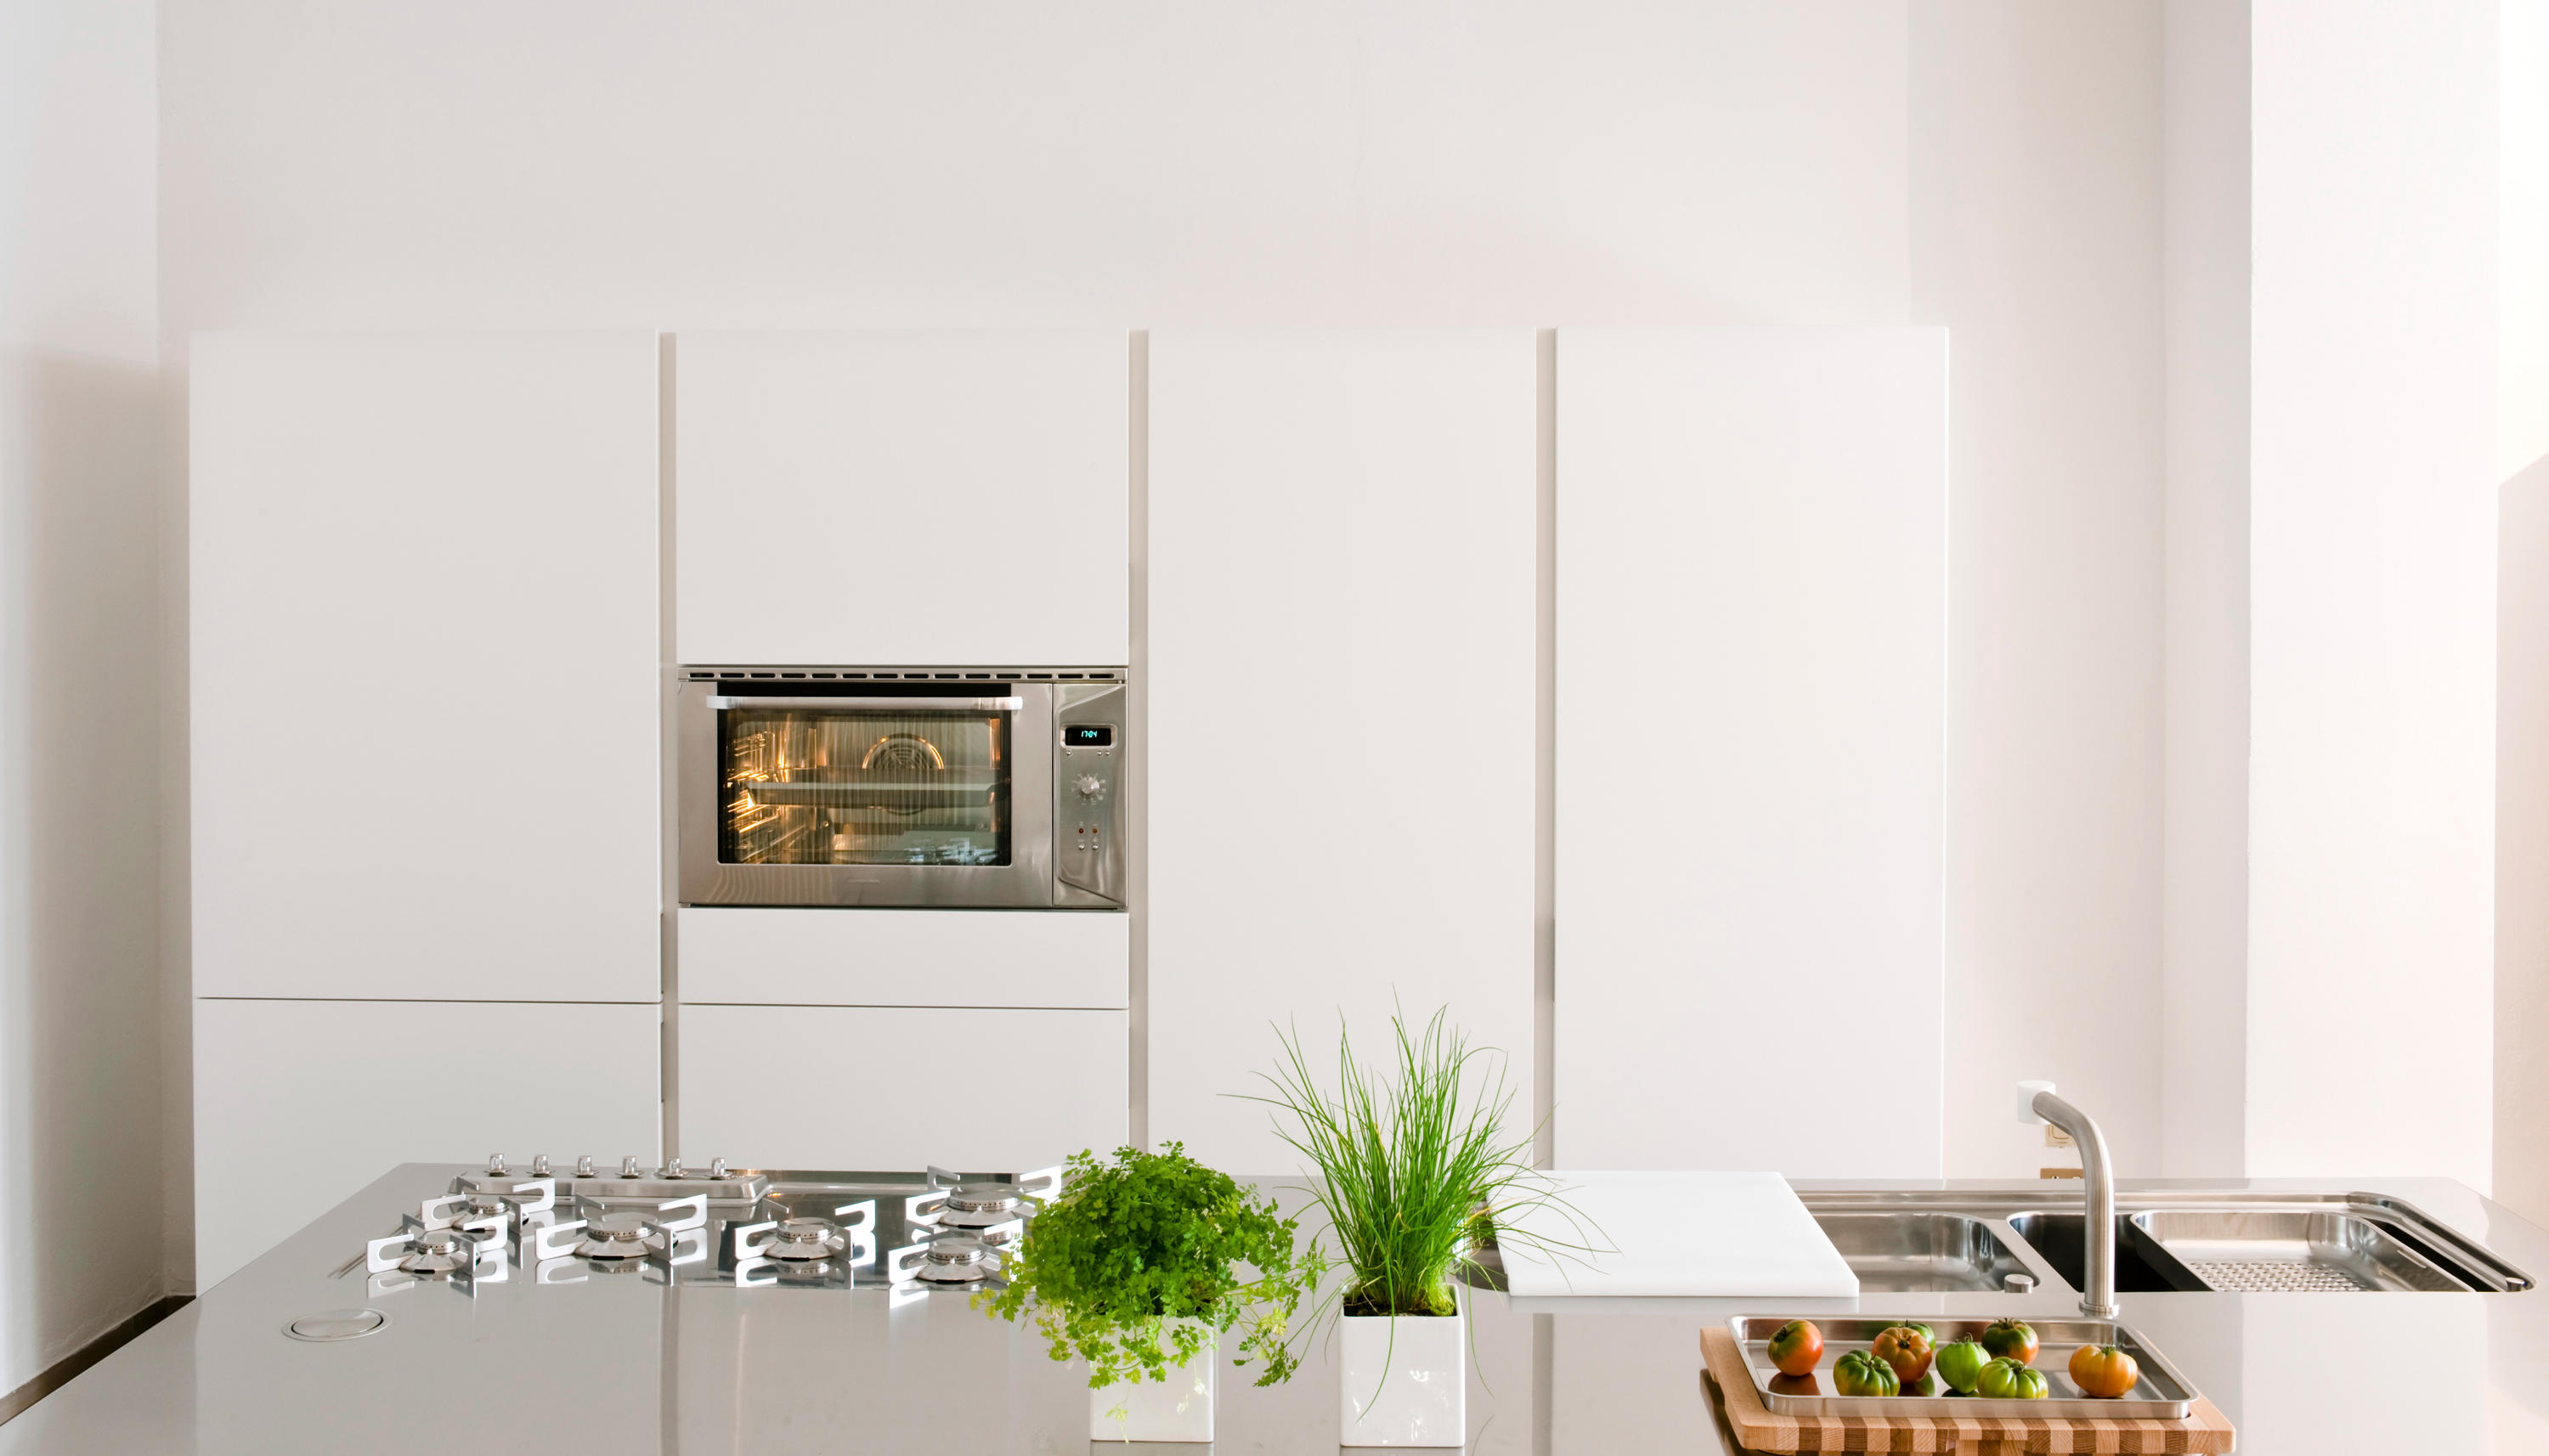 Dwg Cucine Con Isola. Awesome Il With Dwg Cucine Con Isola. Top ...